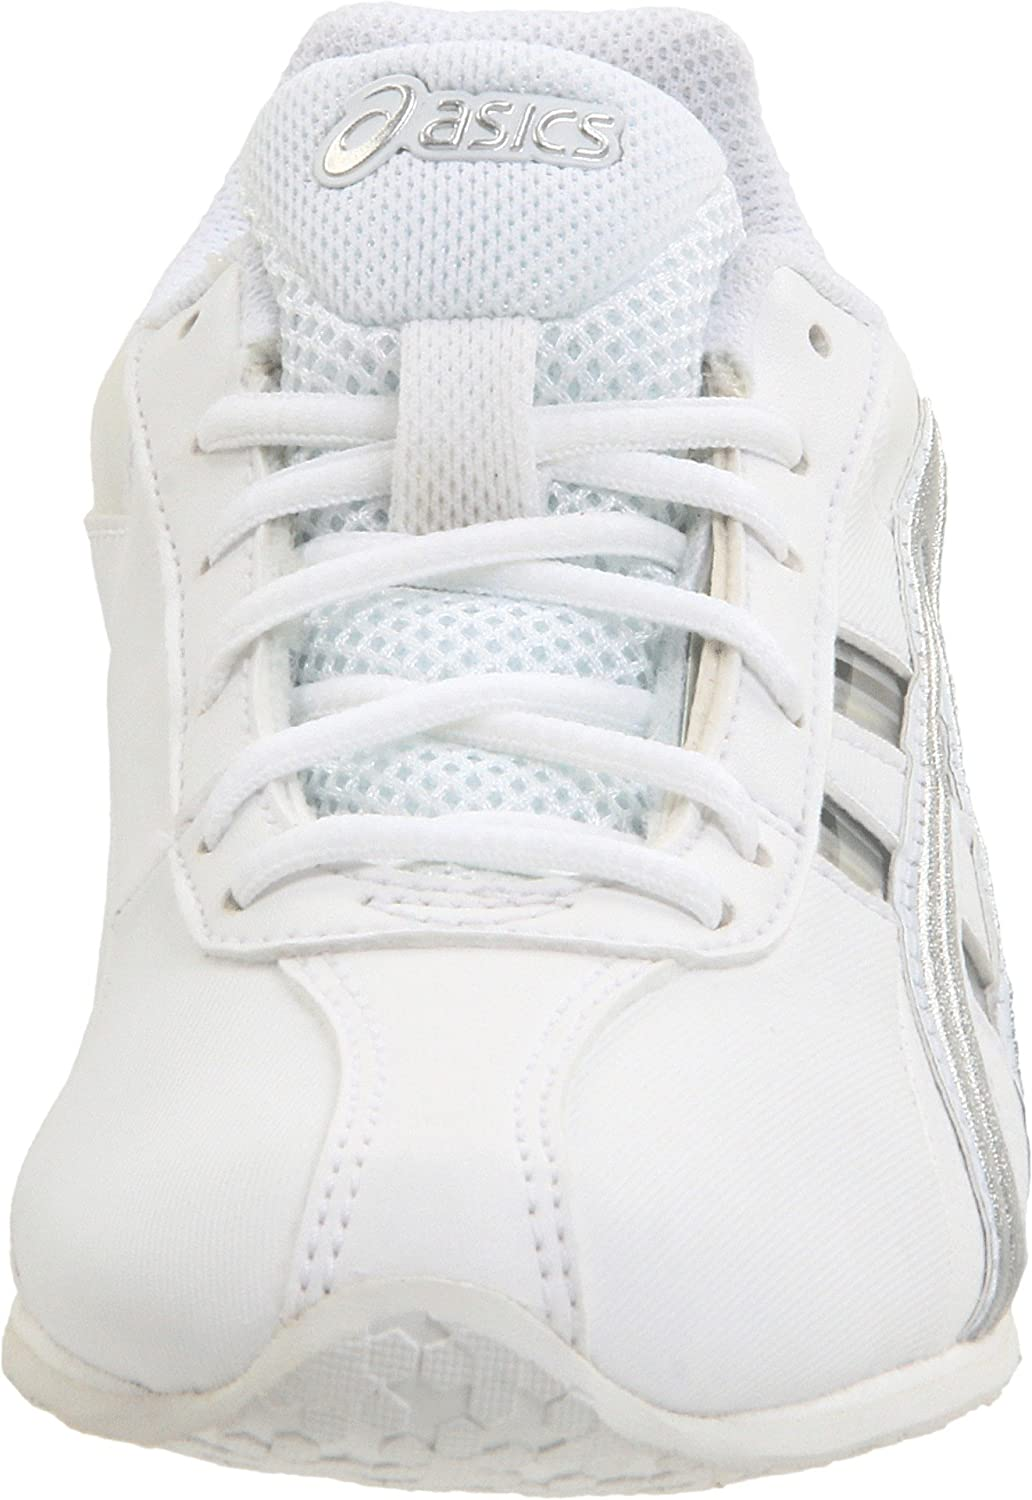 48efccfe88d Asics cheer cheerleading shoe toddler little kid white silver us little kid  shoes converse jpg 1032x1500